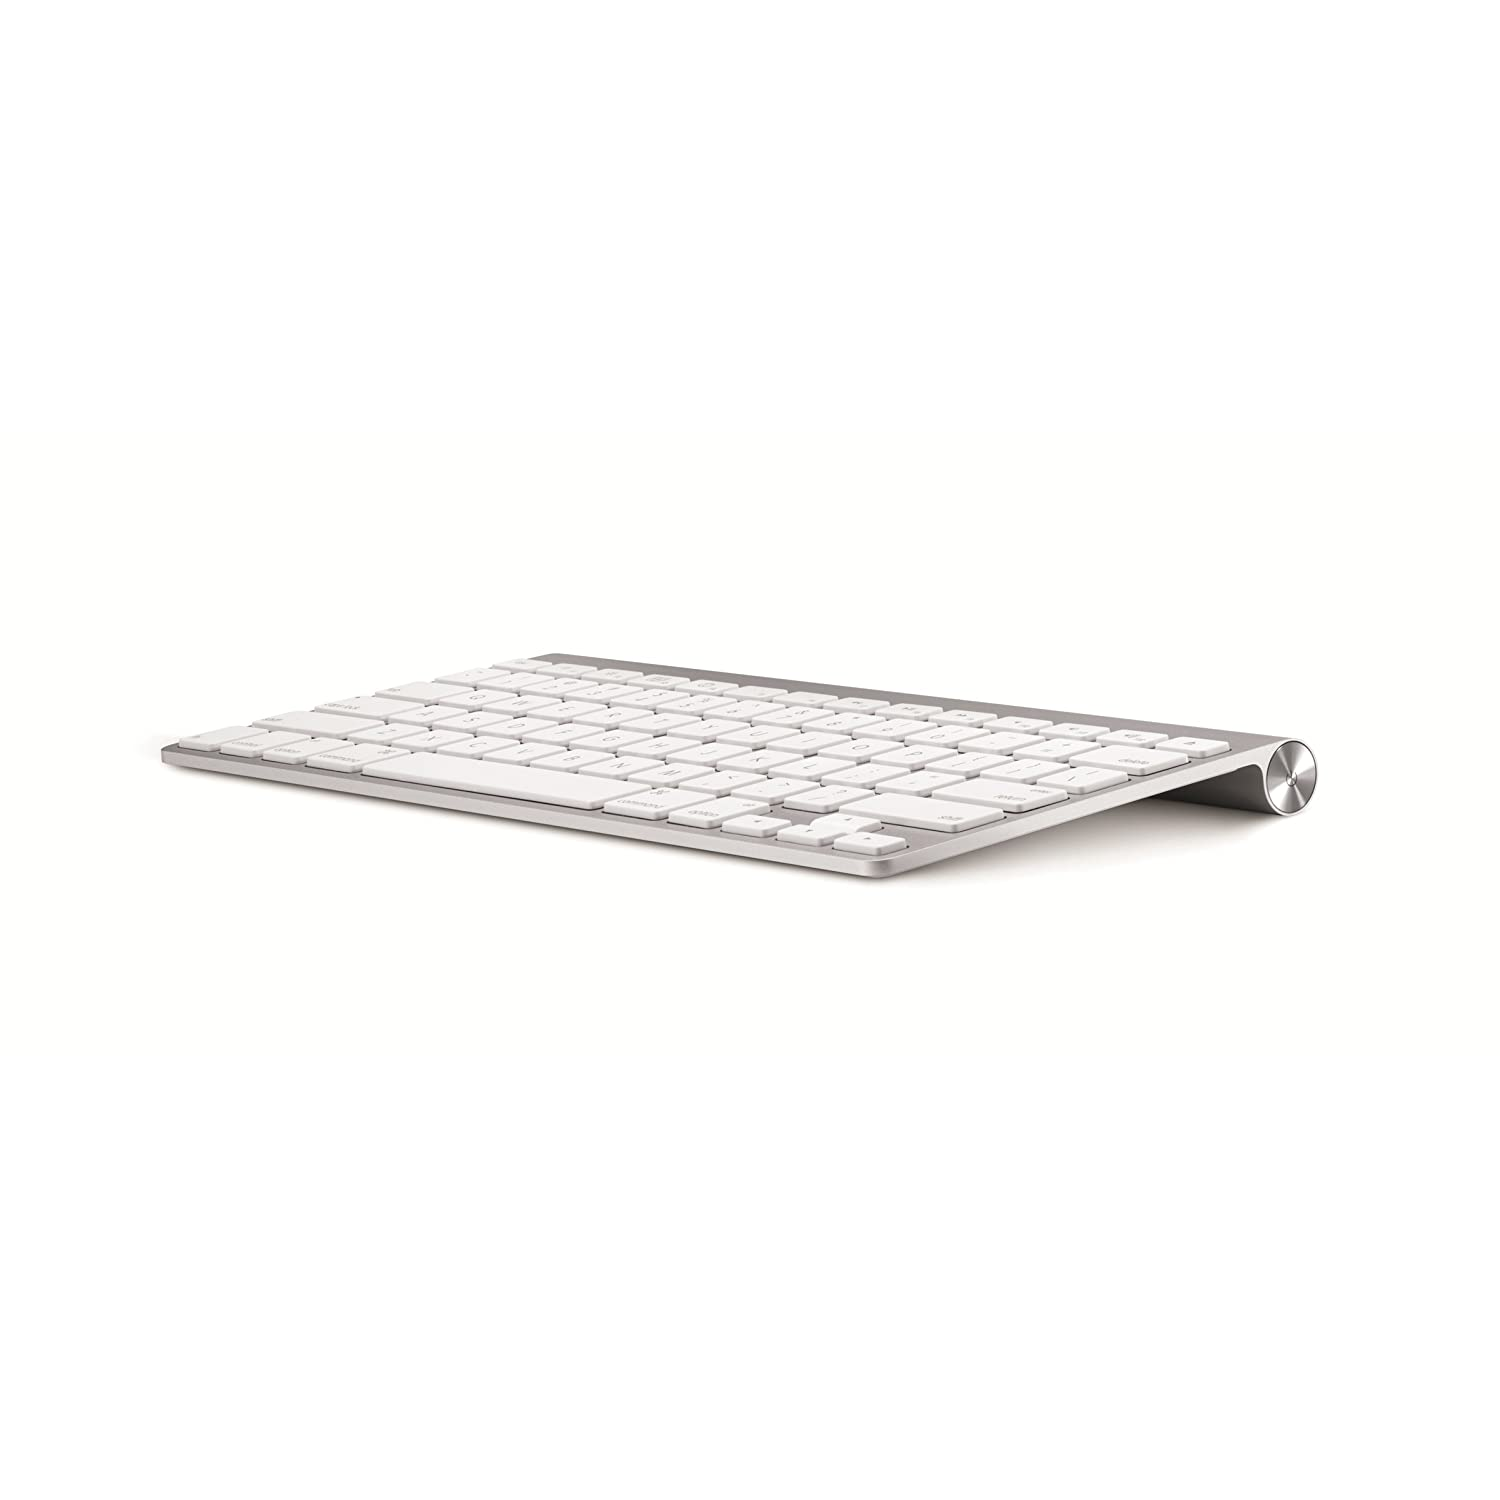 Apple Wireless Keyboard MC184LL/B [NEWEST VERSION]